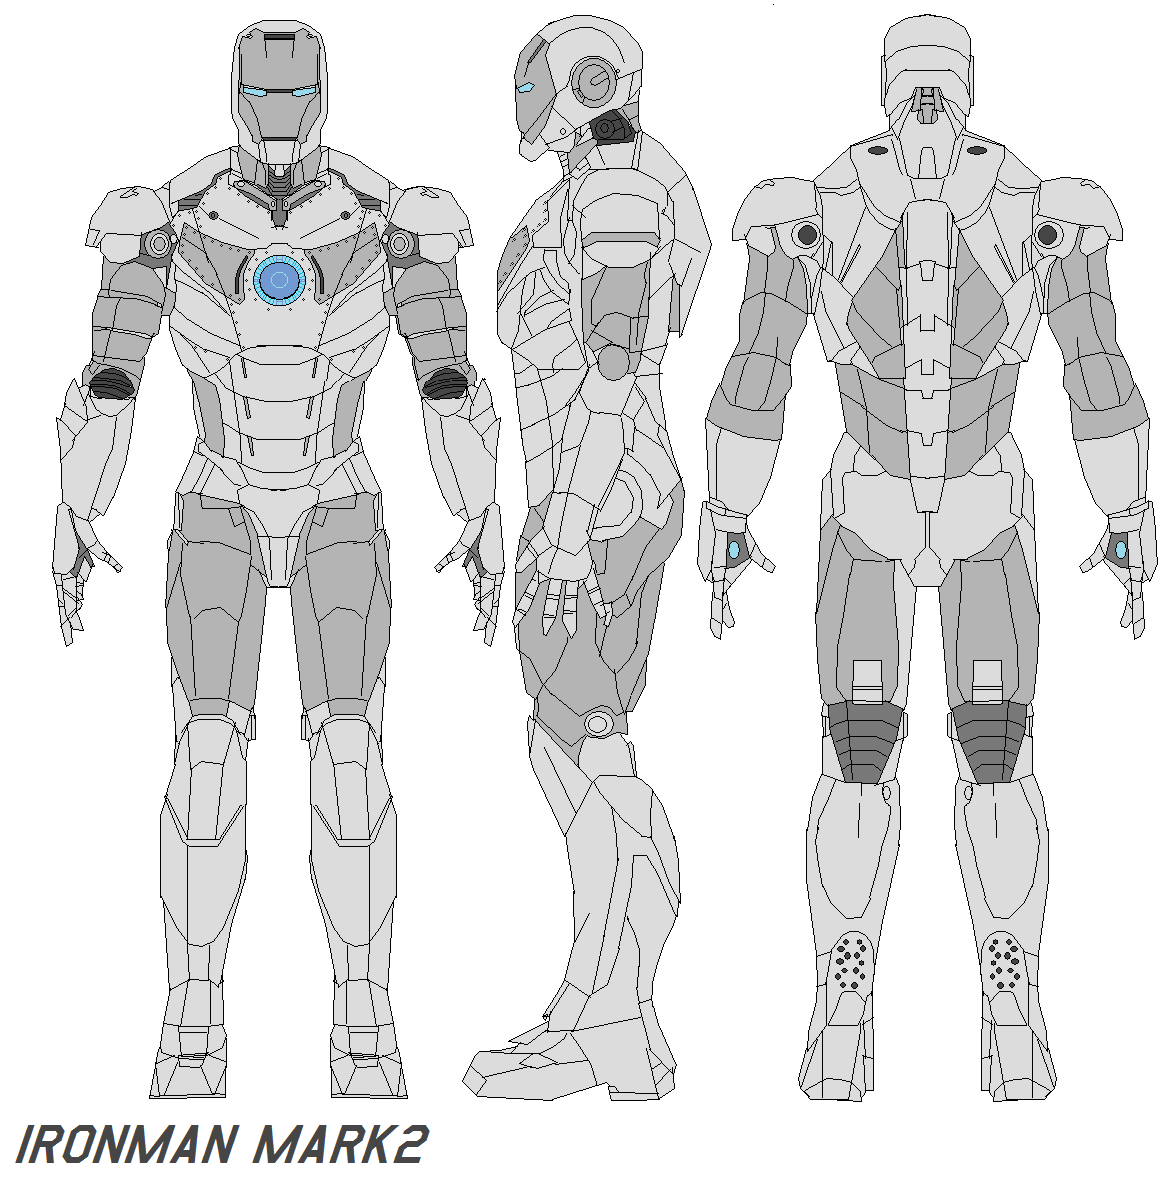 ironman mark 2 live action film officially released image of the films final version of the suit three types of iron man armor appear in the ironman mark